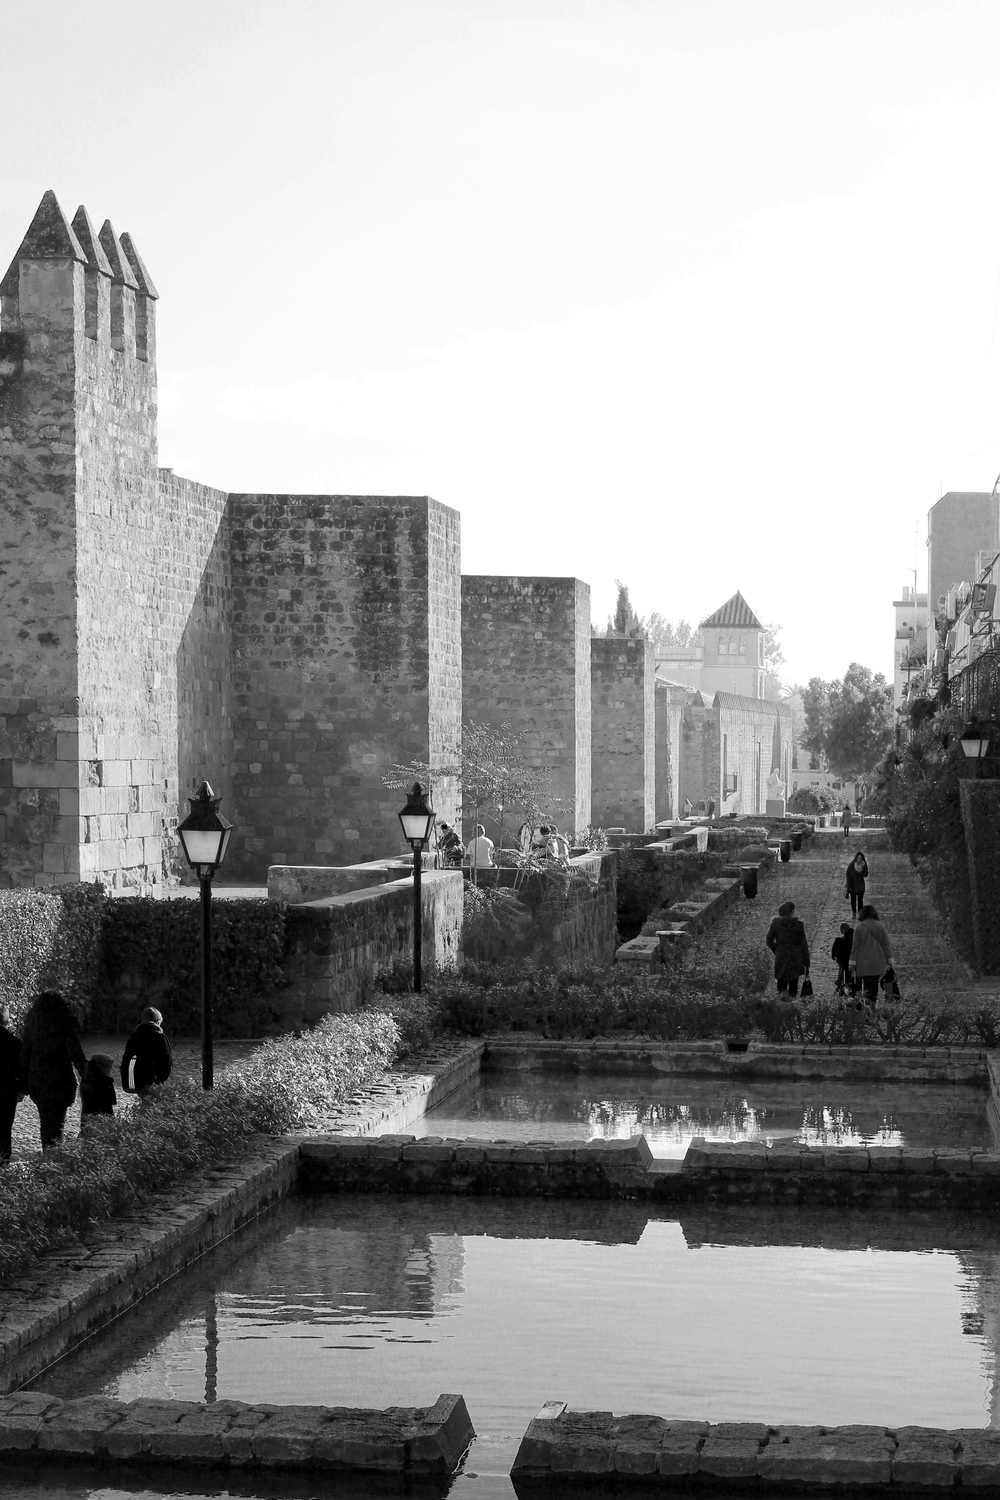 Eastern medieval city wall